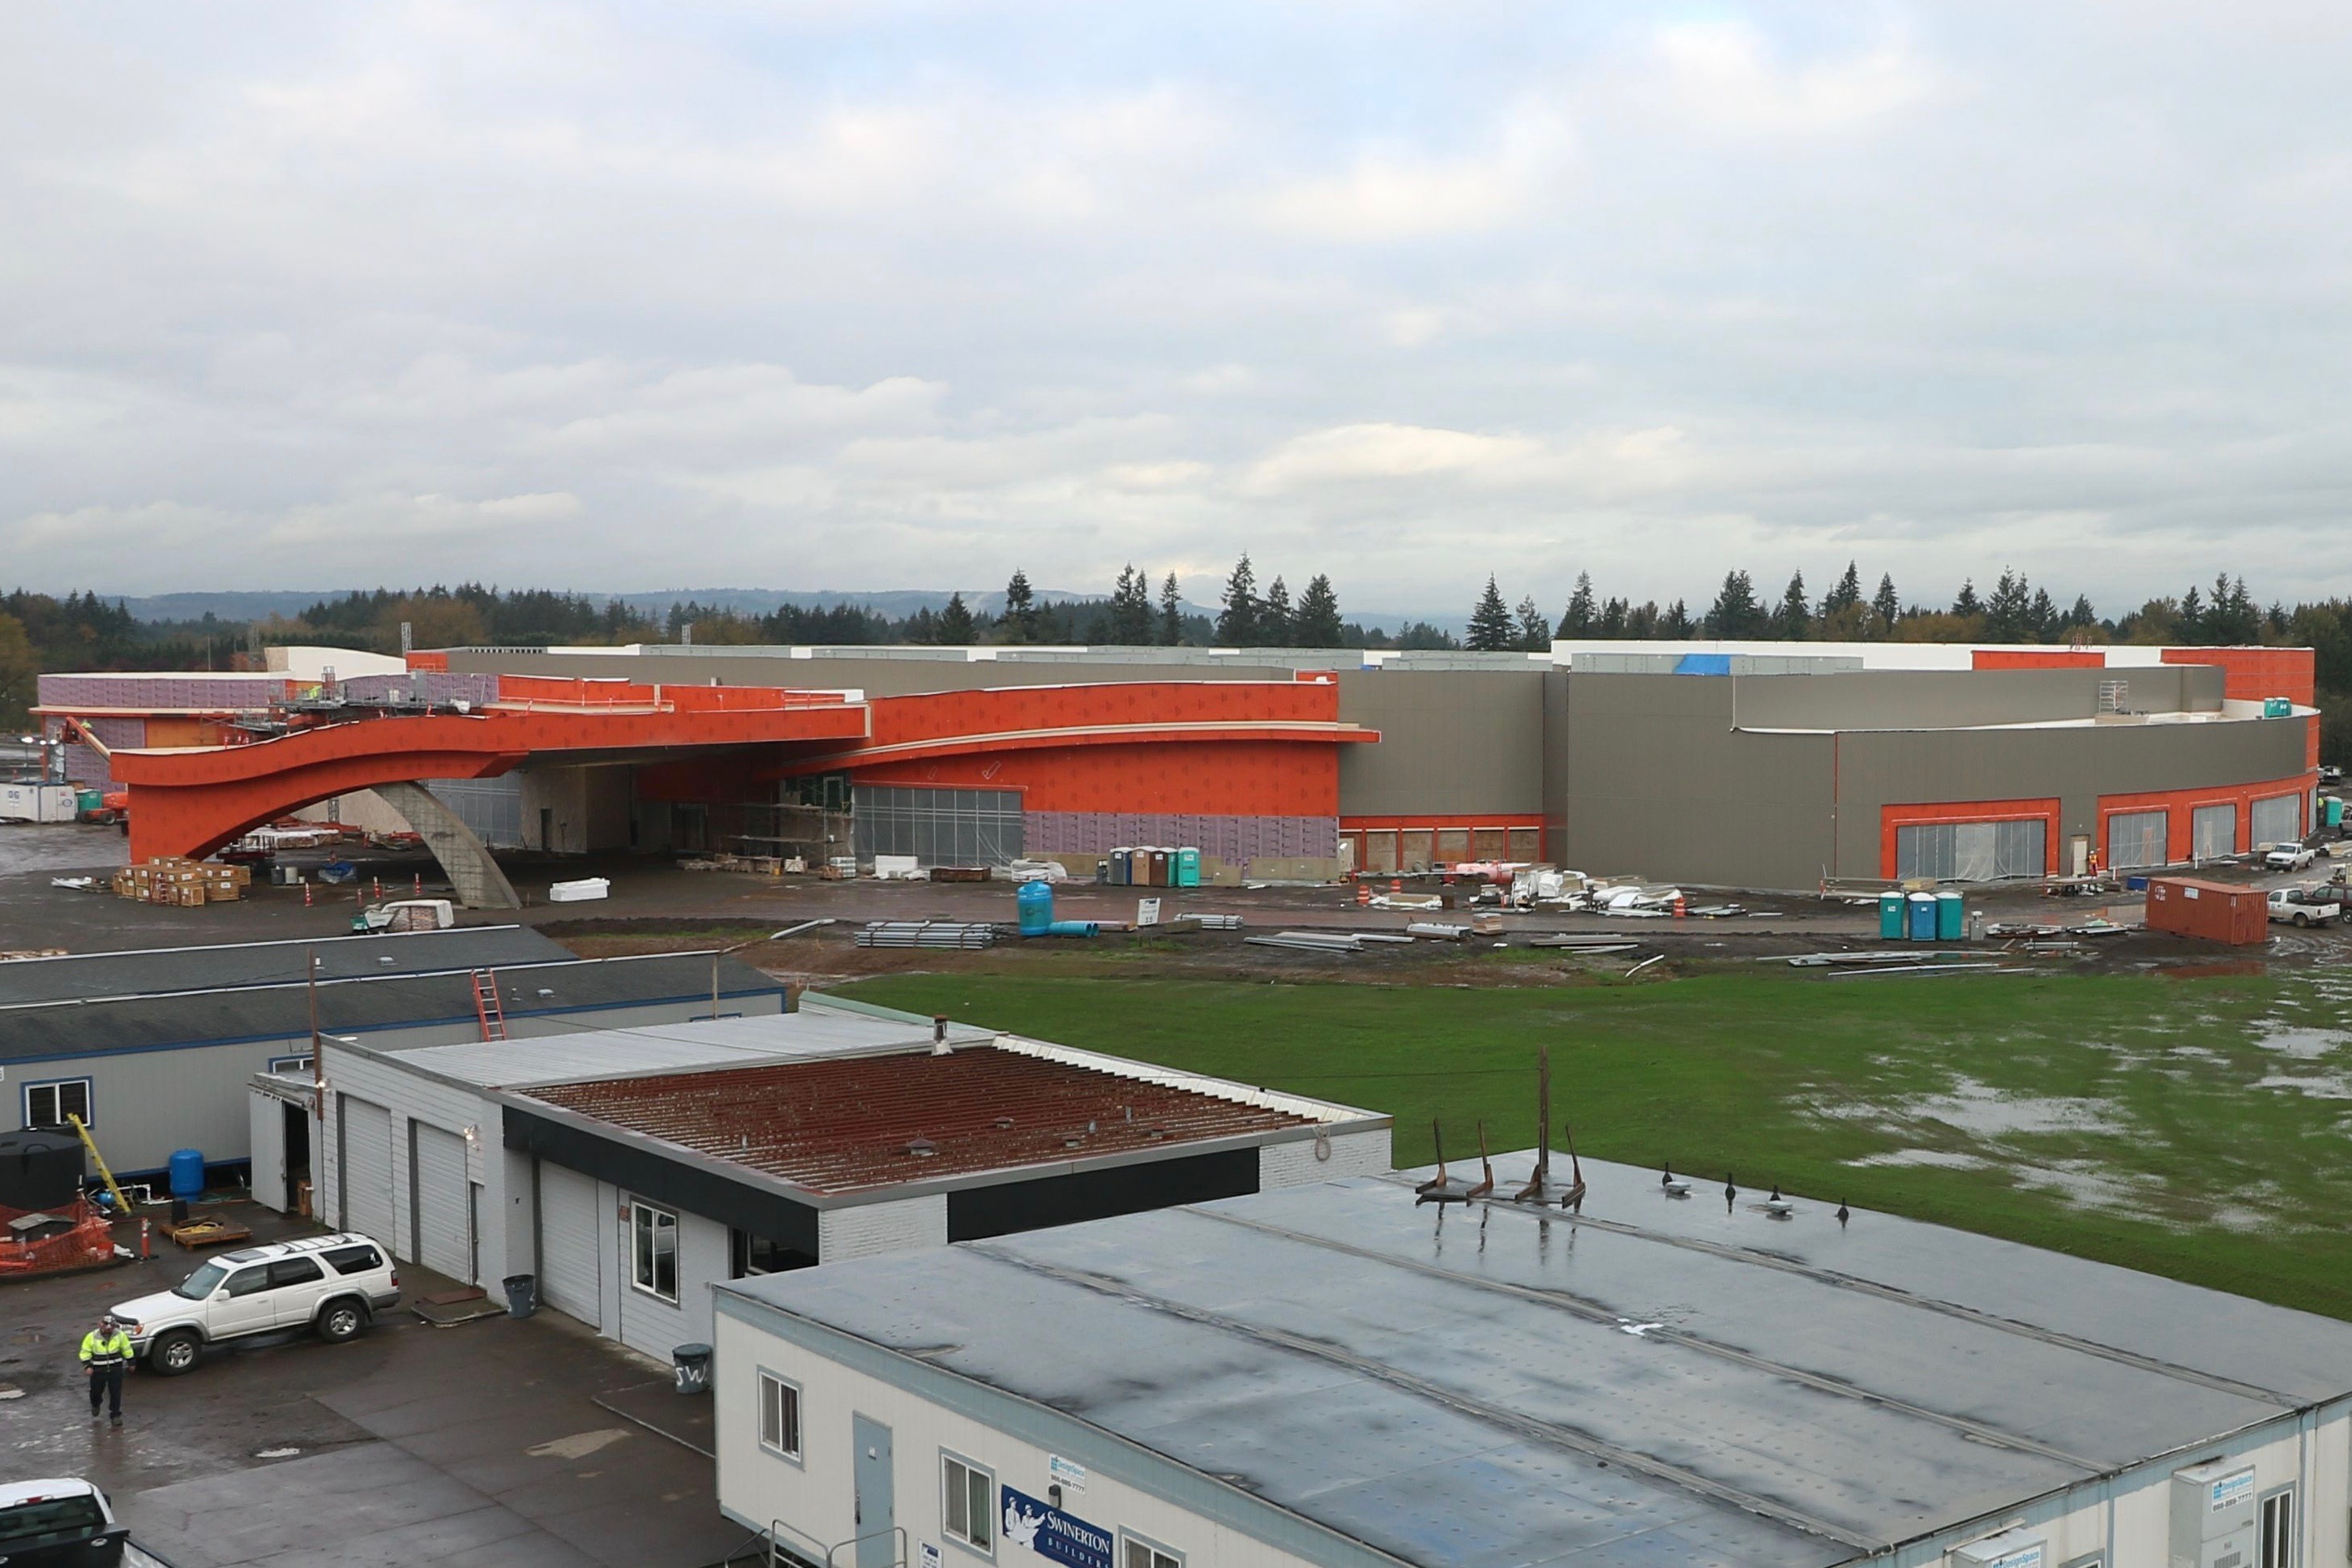 Cowlitz Tribe faces one more legal hurdle before opening casino